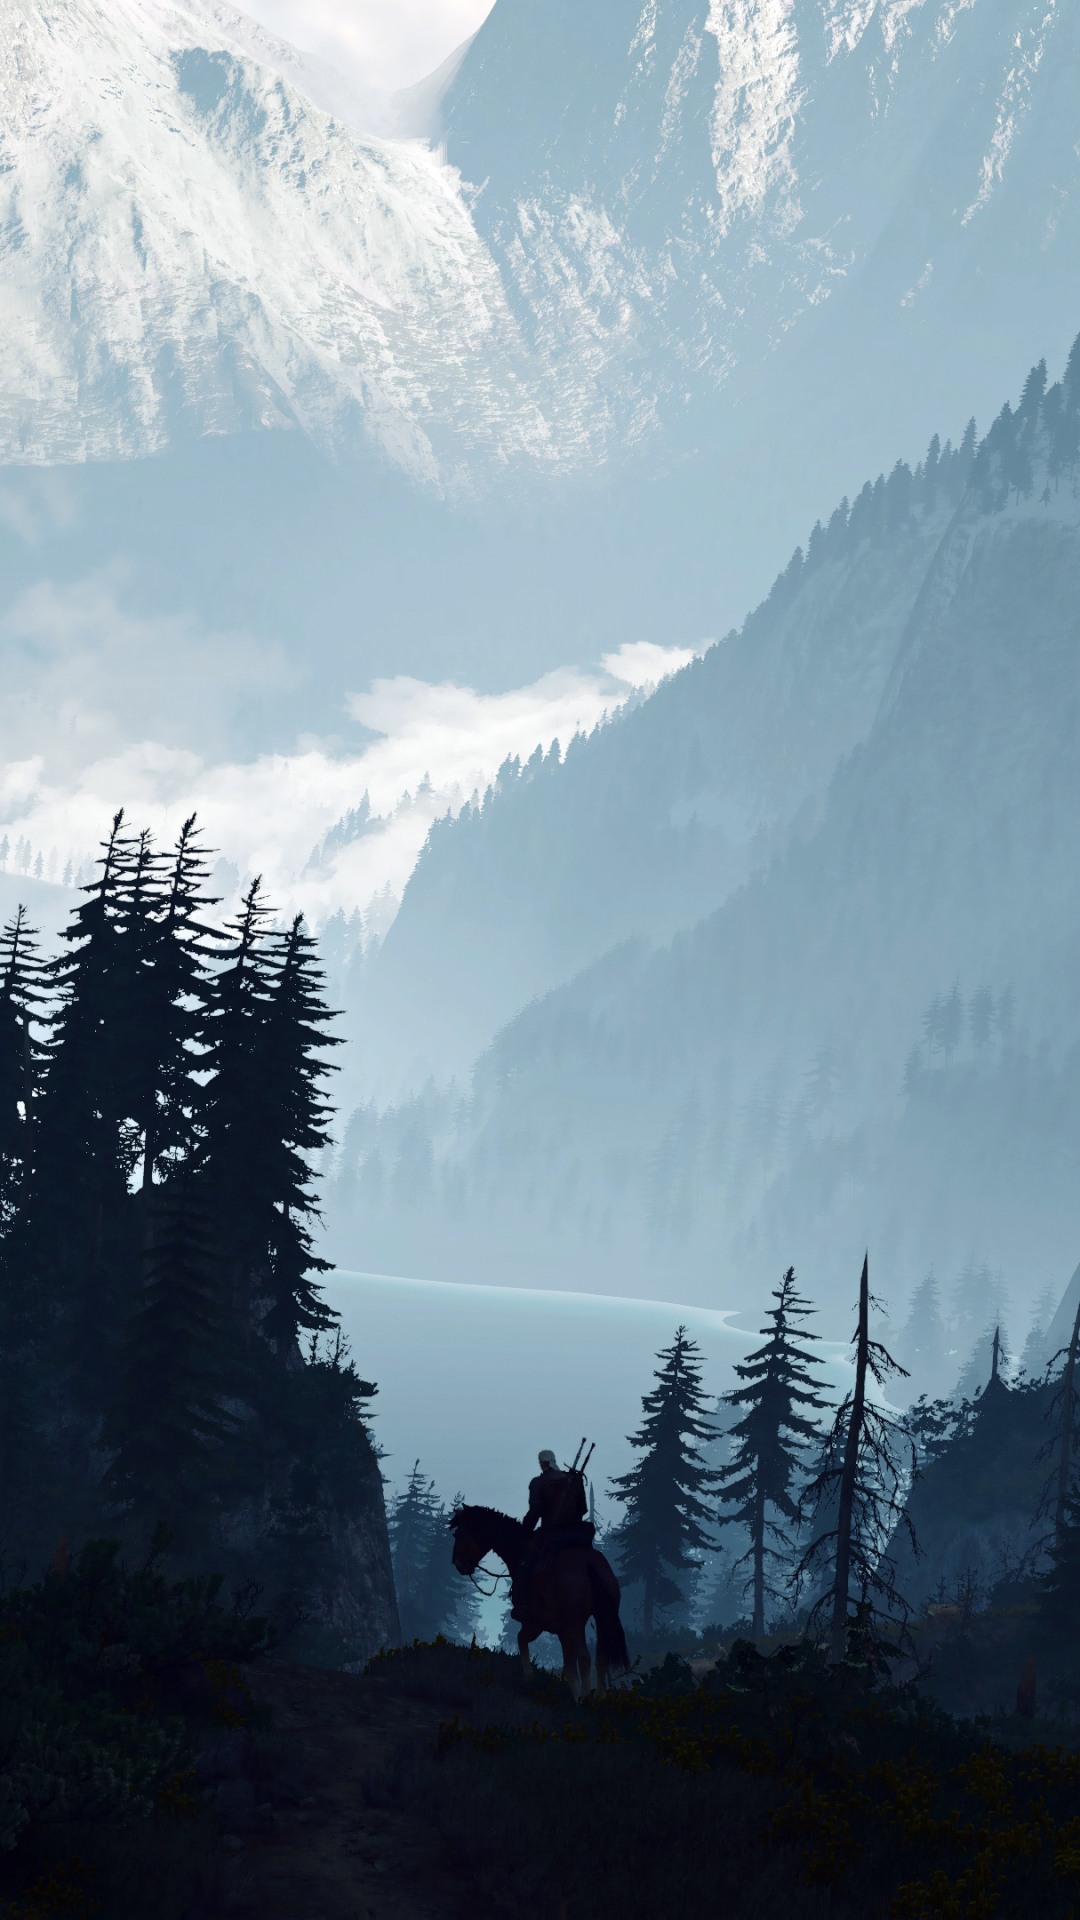 Video Game The Witcher 3 Wild Hunt 1080x1920 Wallpaper Id